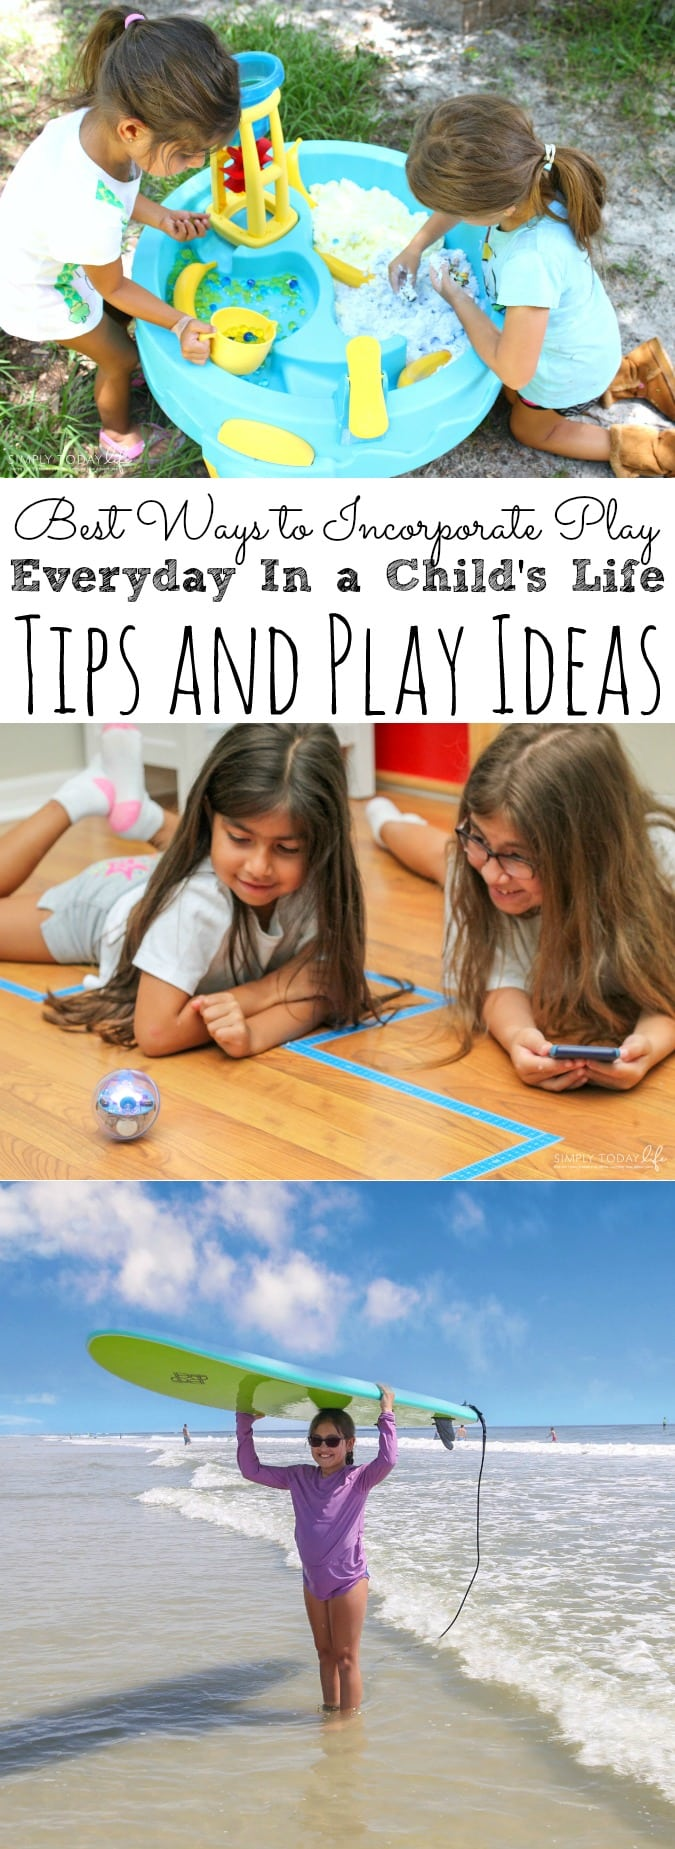 Tips and Play Ideas For Kids